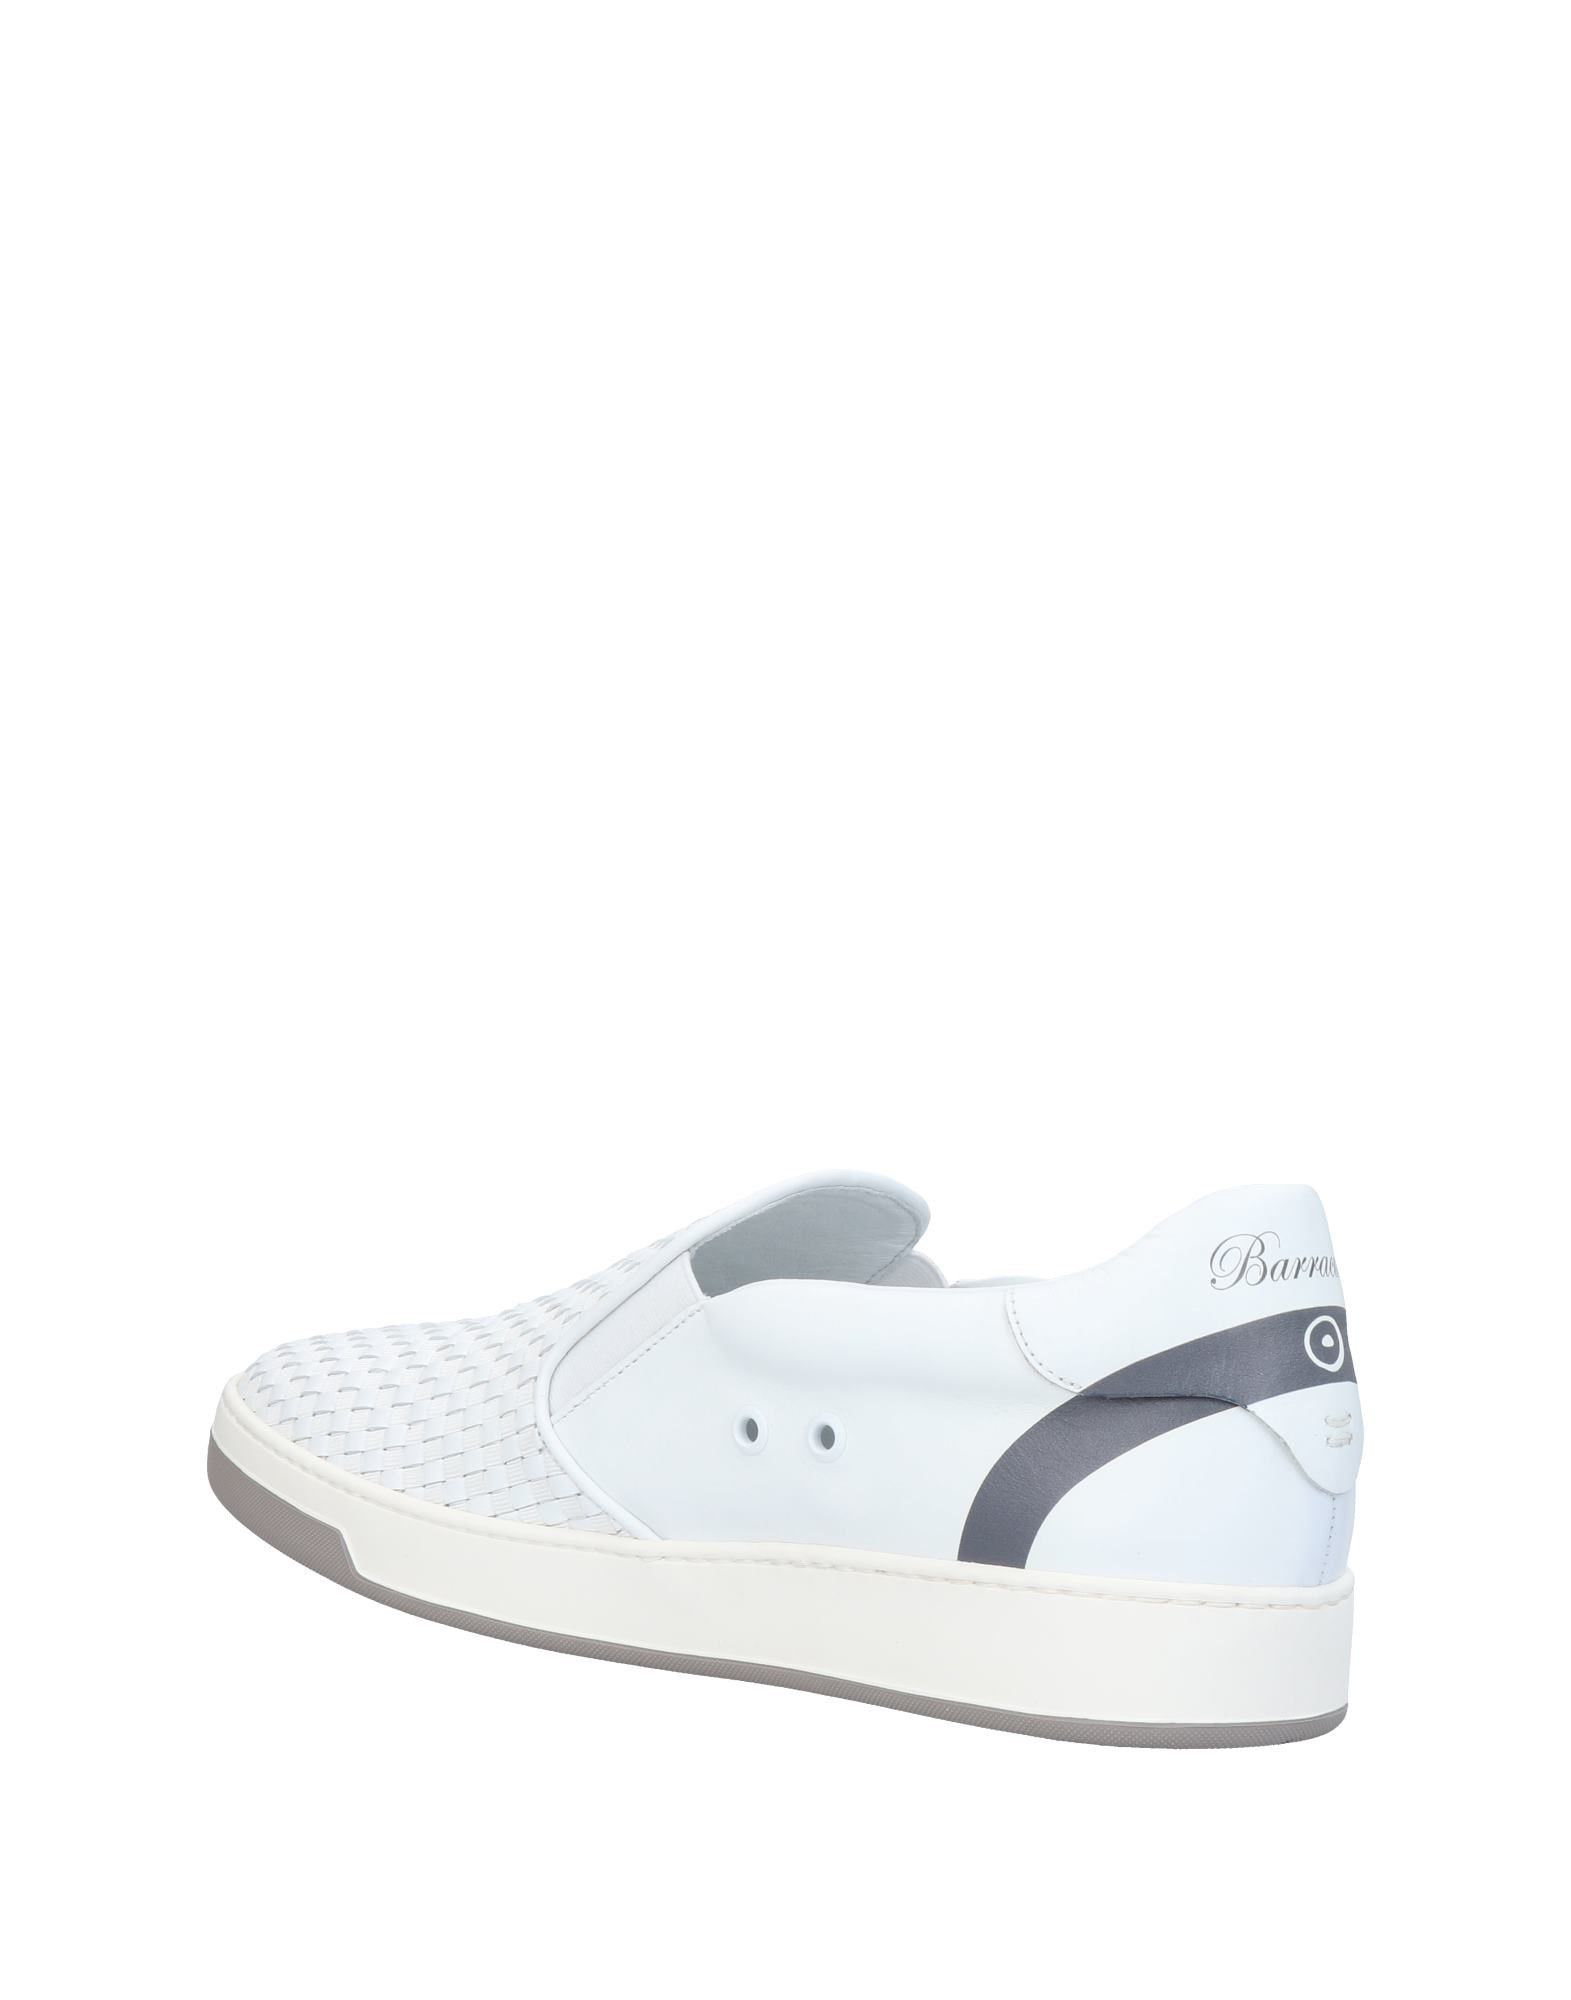 Sneakers Barracuda Homme - Sneakers Barracuda sur